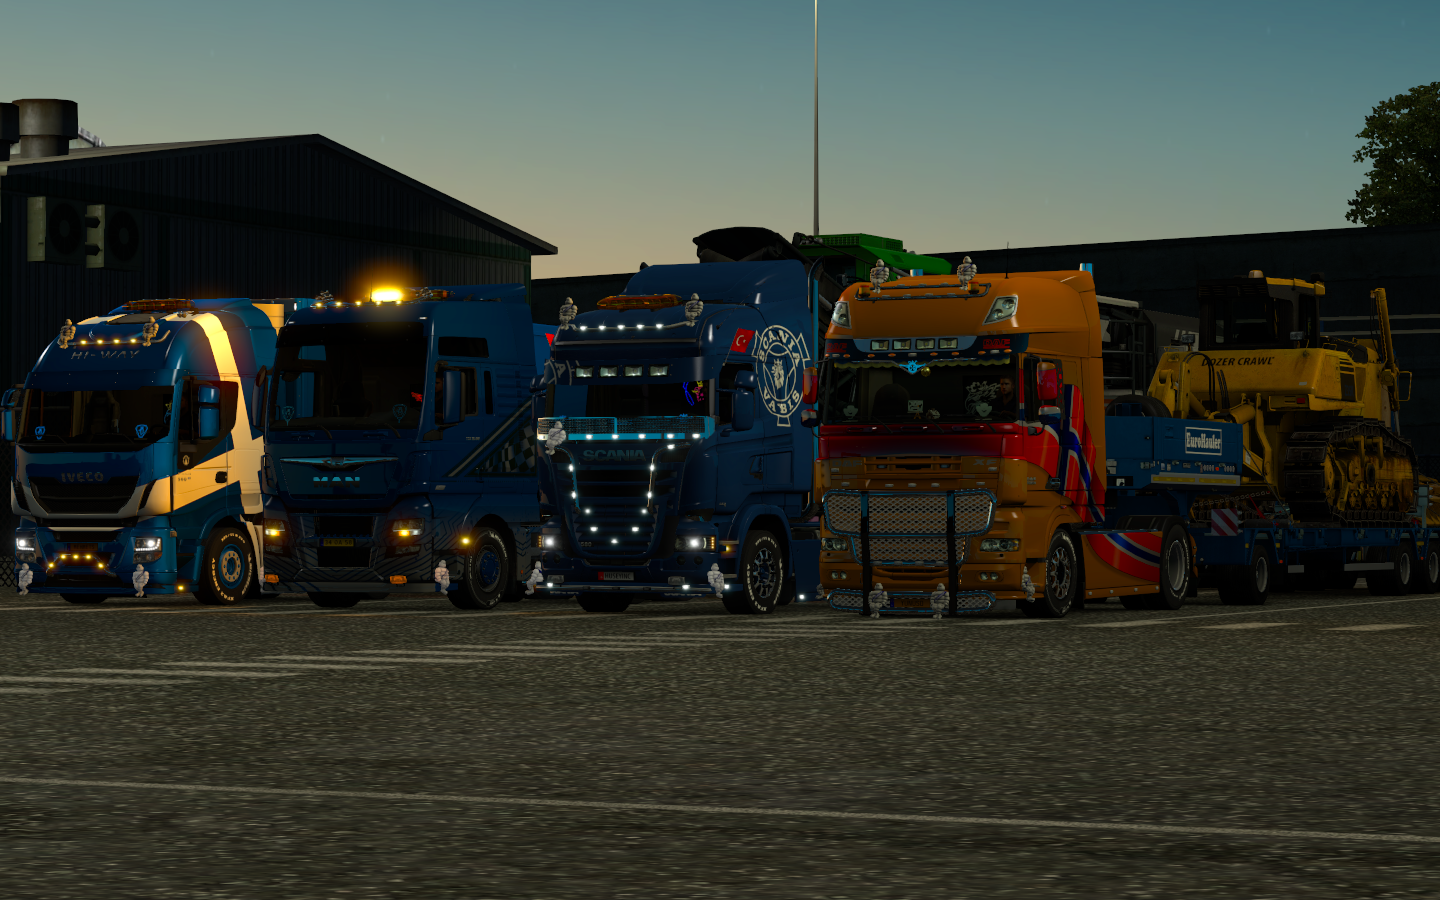 ets2_20190426_225752_00.png